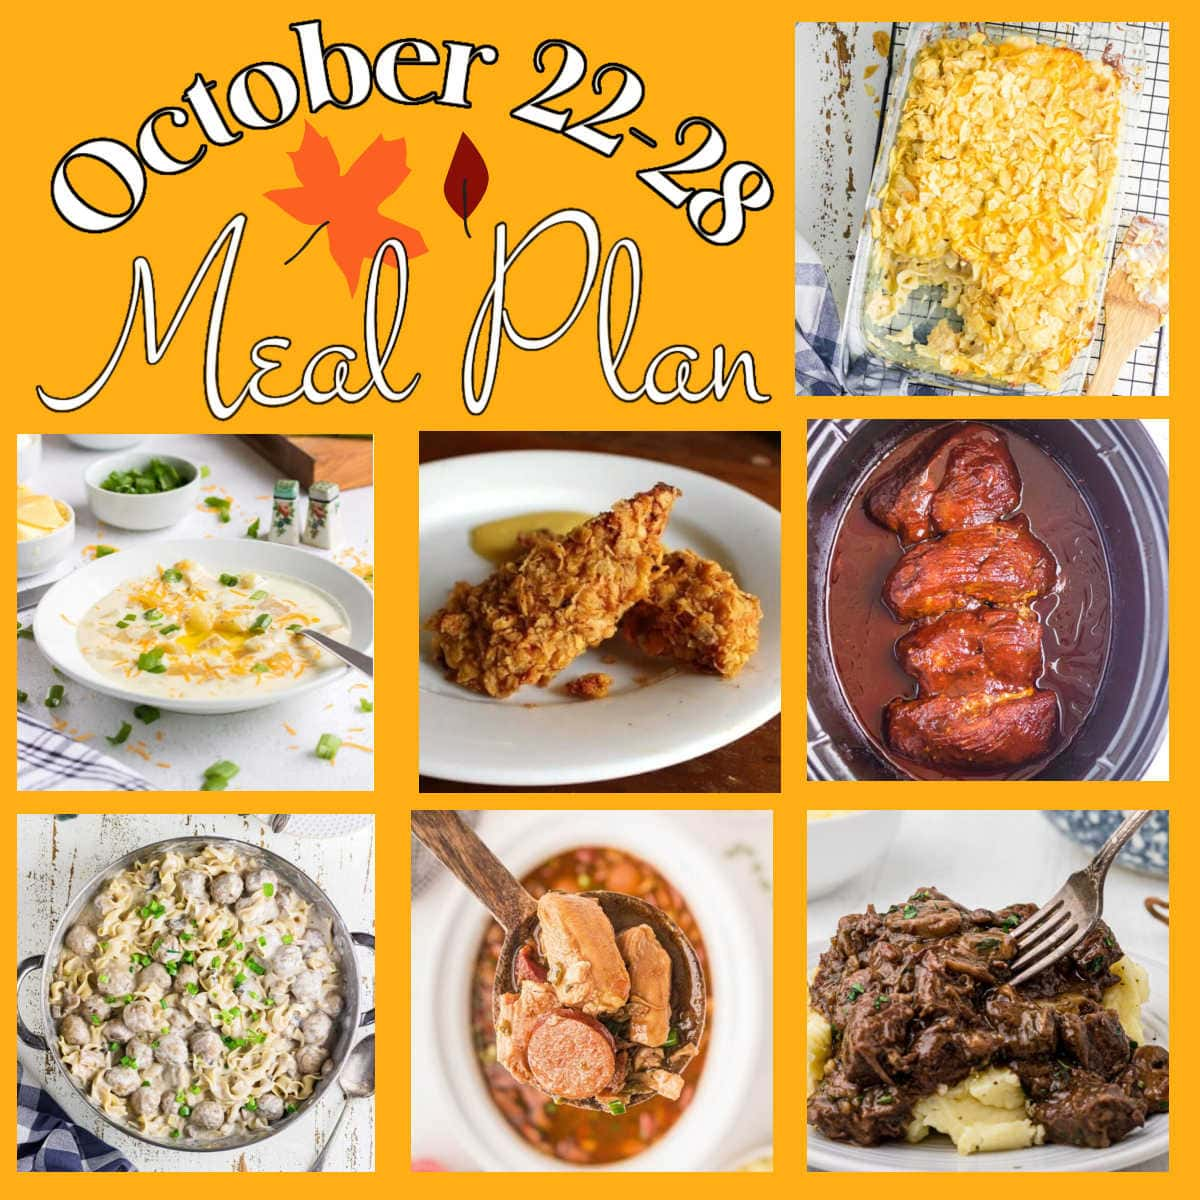 Collage of images from the week 44 meal plan with text overlay.